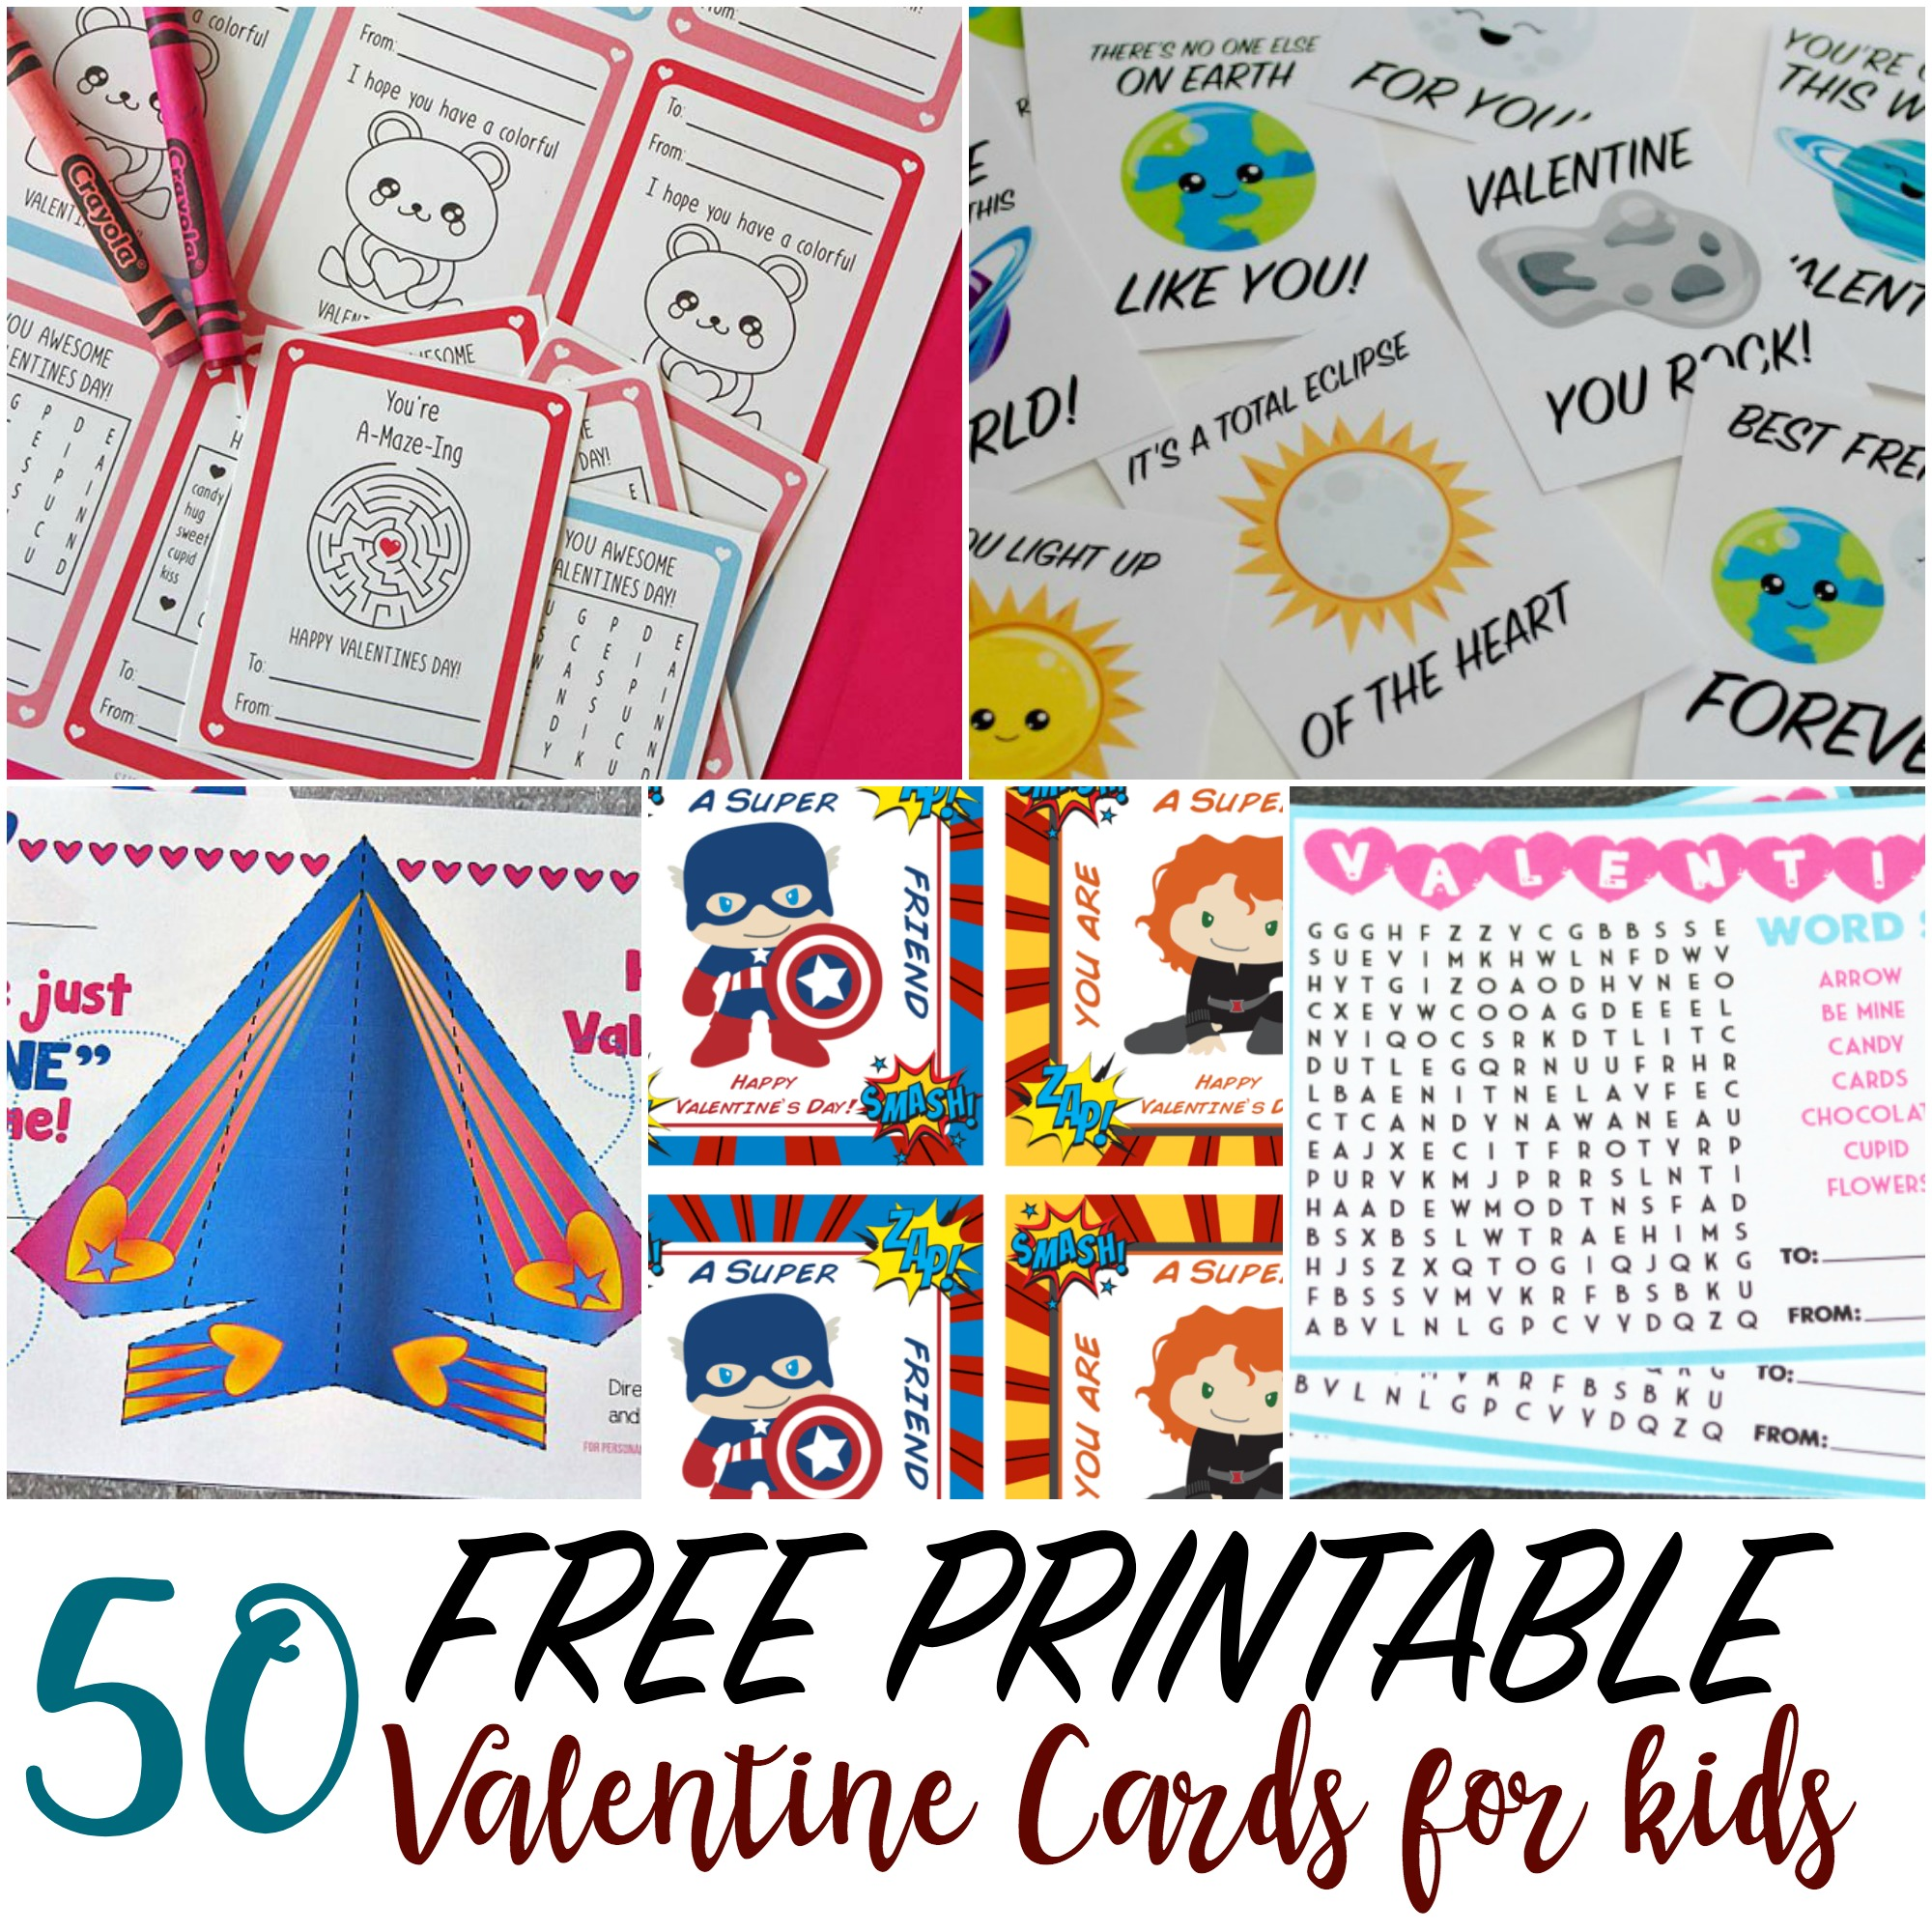 photo regarding Printable Valentine Cards for Husband referred to as 50 Printable Valentine Playing cards for Young children